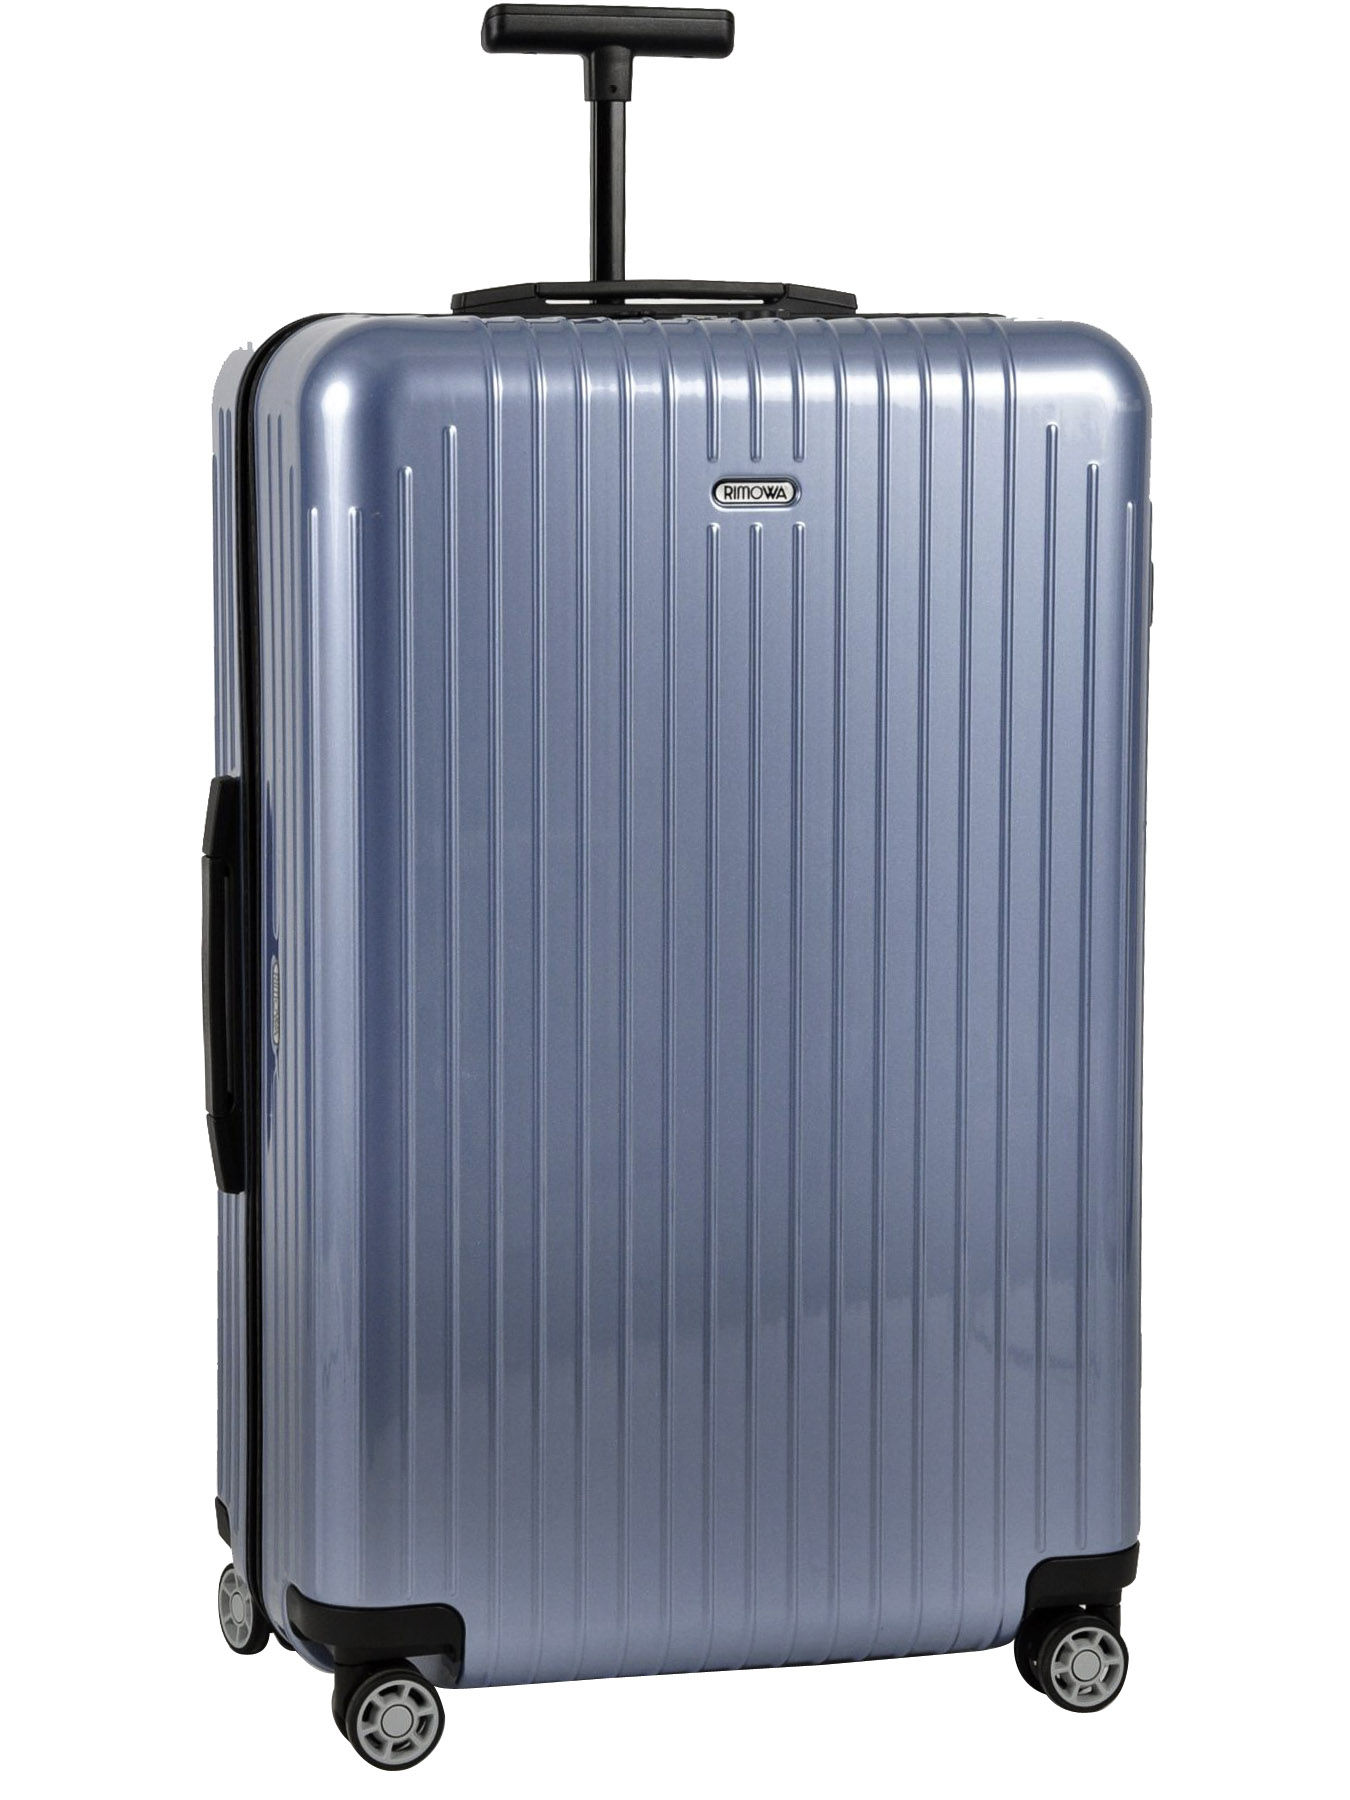 rimowa hardside luggage salsa air best prices. Black Bedroom Furniture Sets. Home Design Ideas